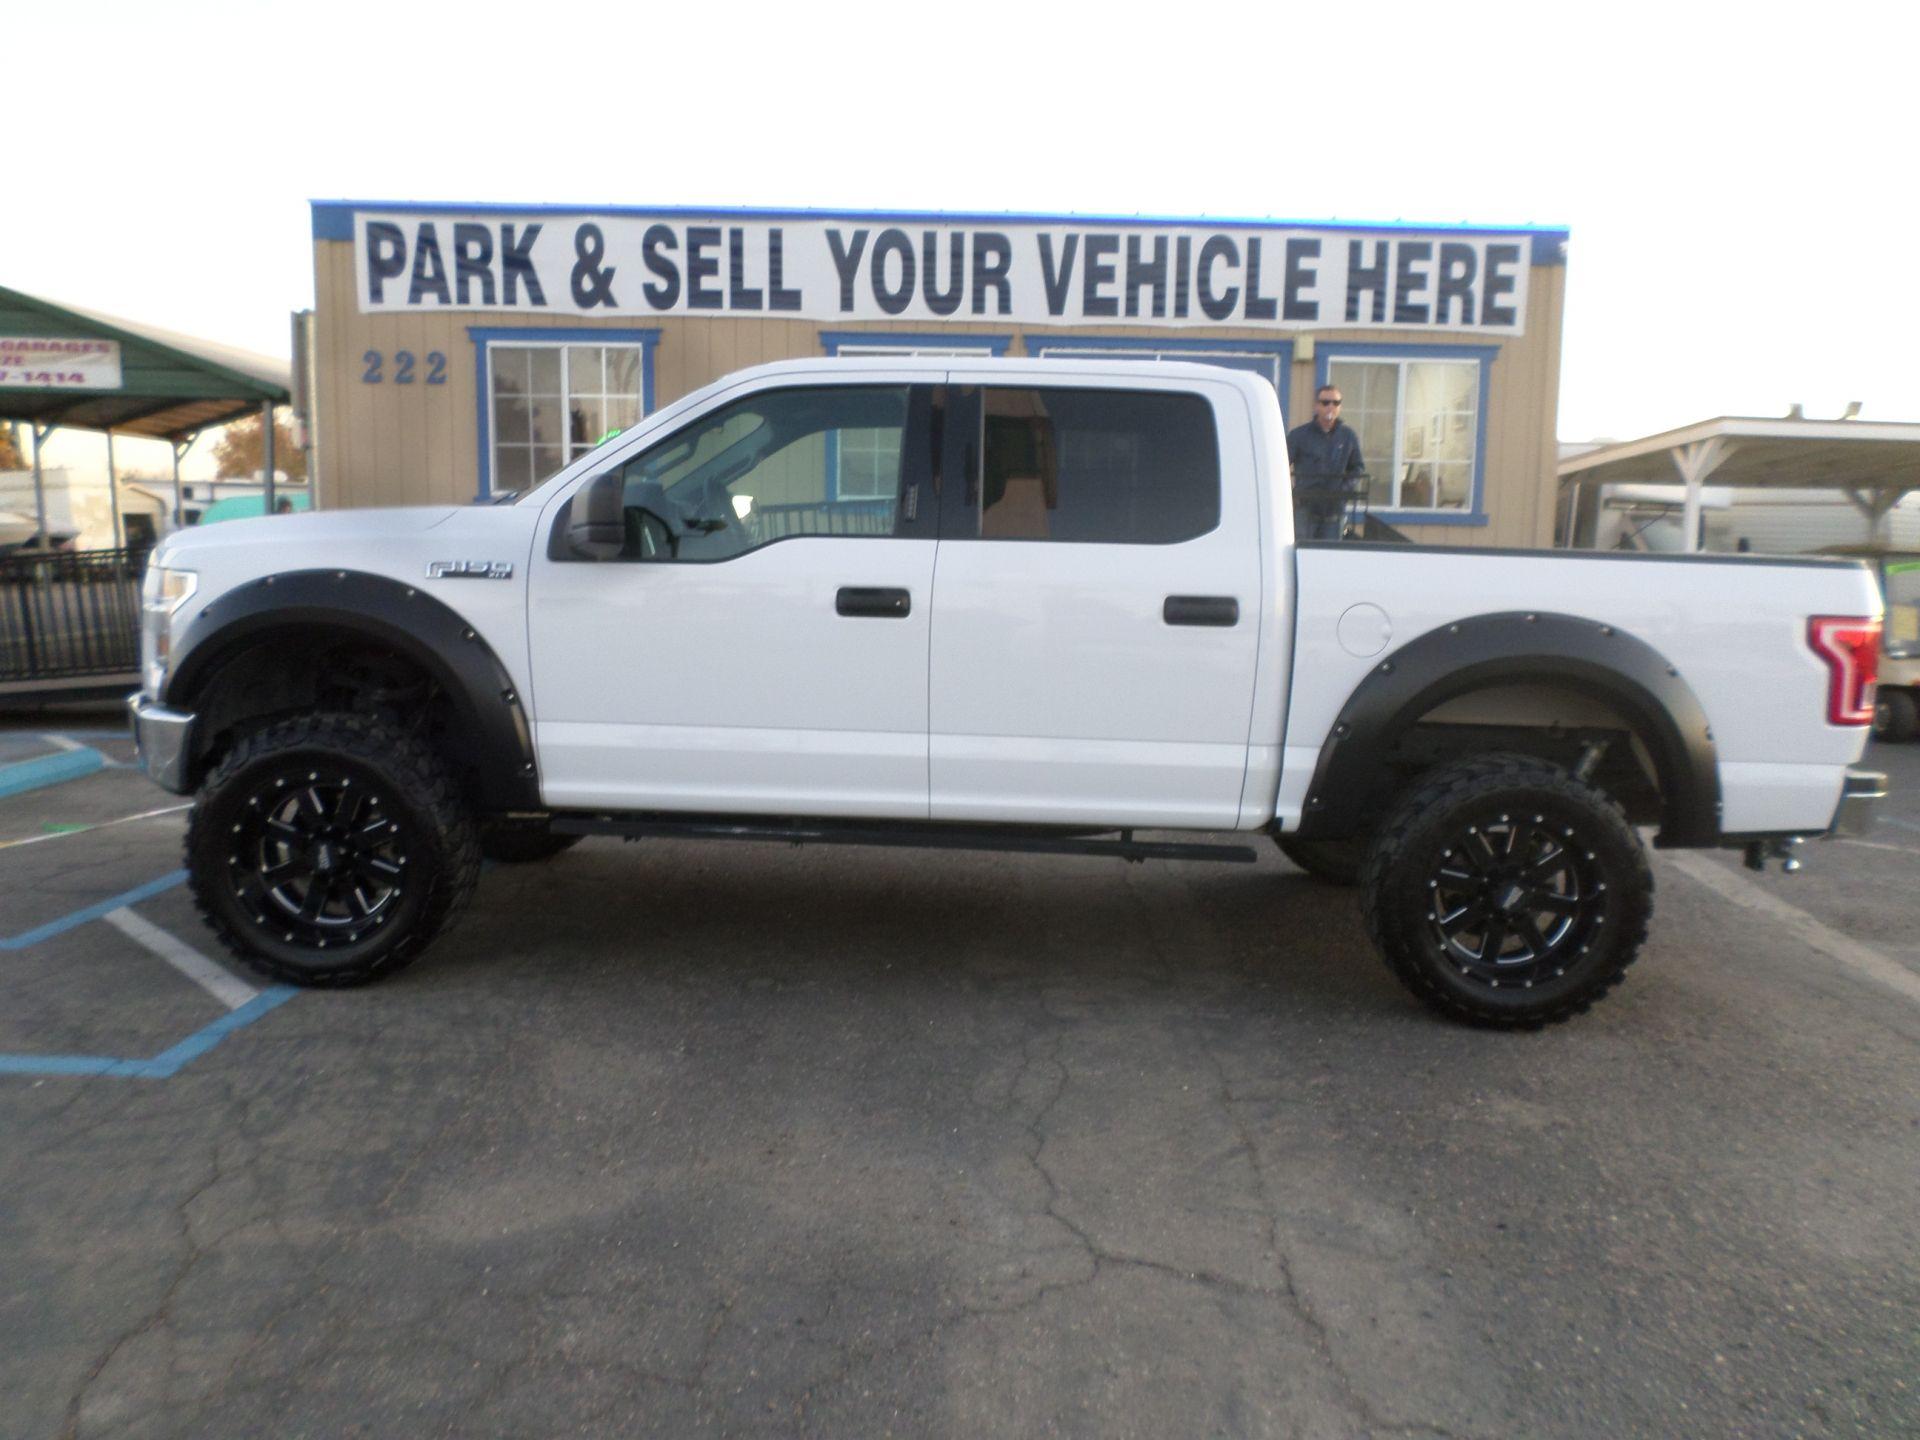 truck for sale 2016 ford 4x4 f 150xlt super crew cab in lodi stockton ca ford f150 crew cab crew cab cab pinterest